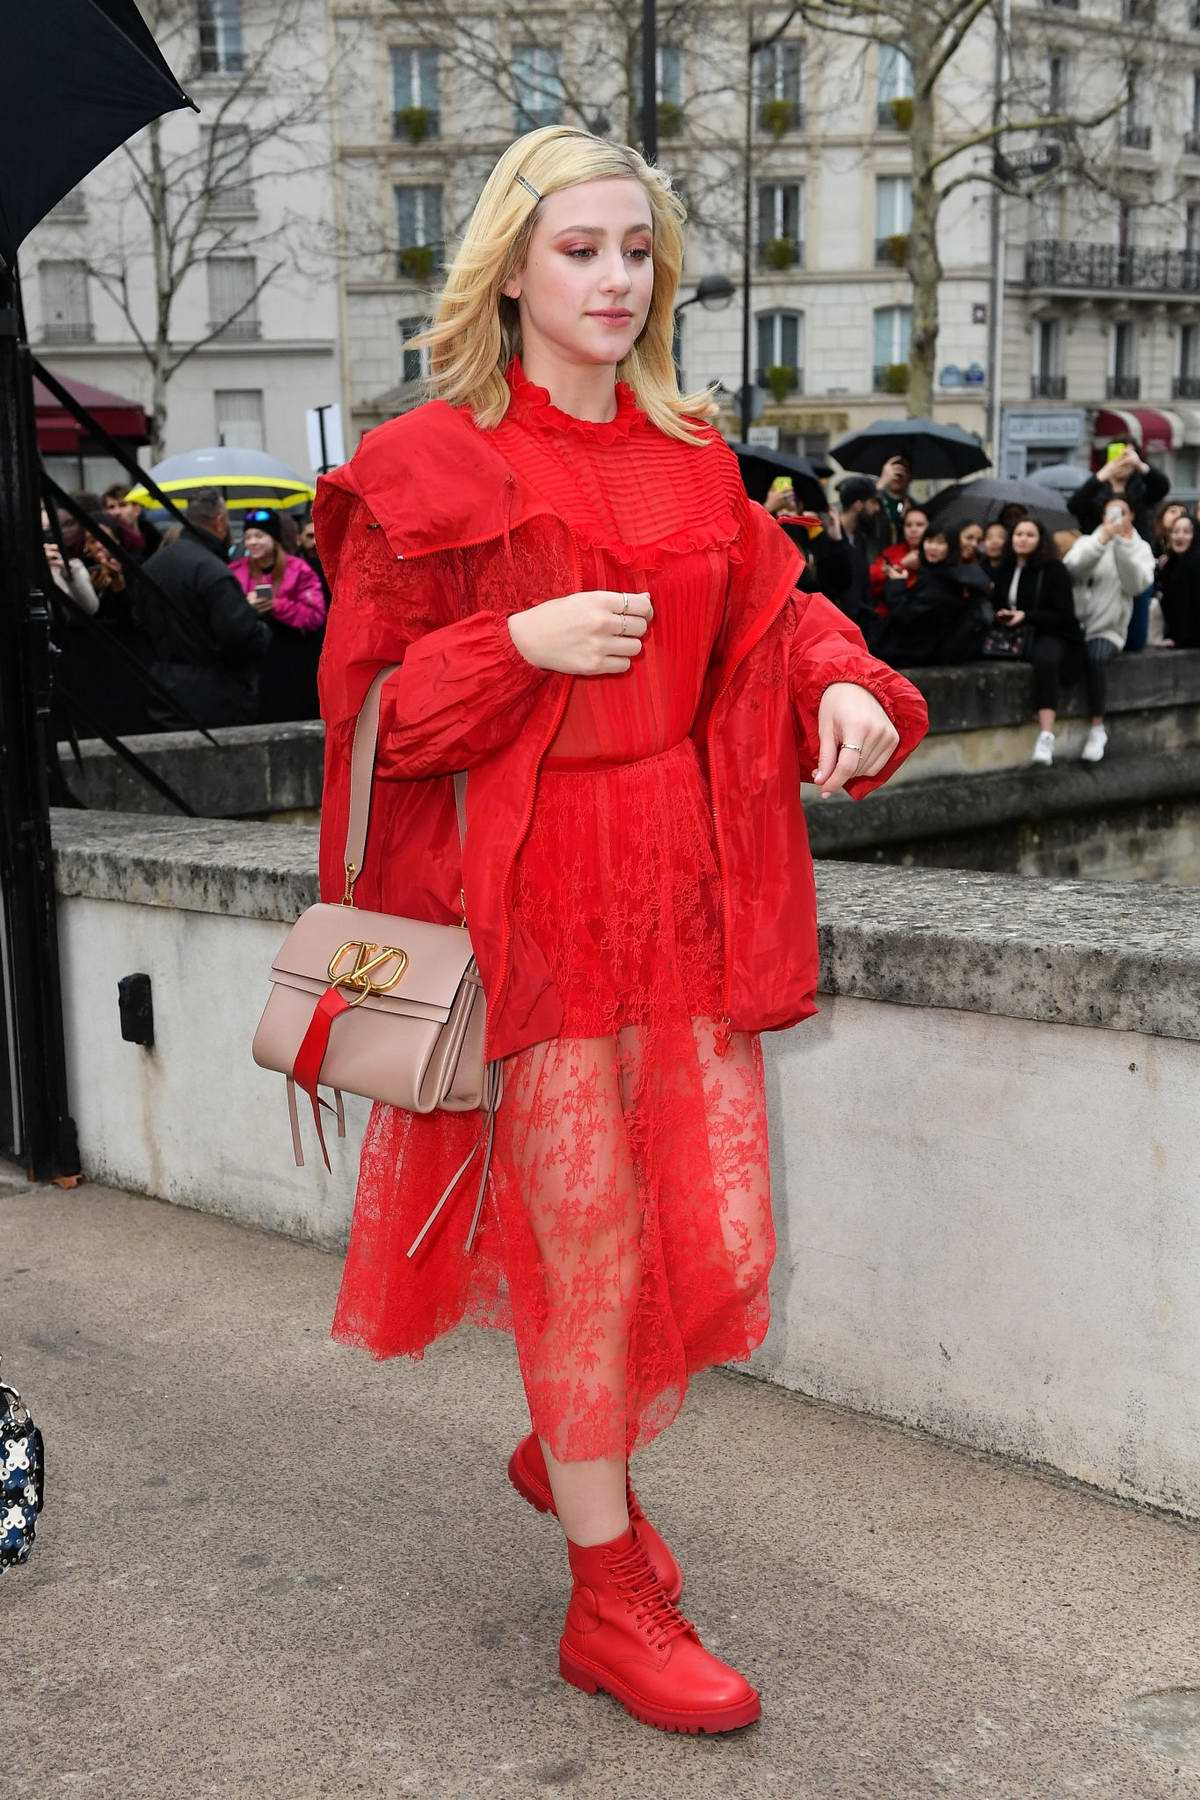 Lili Reinhart dazzles in a bright red ensemble as she attends the Valentino show during Paris Fashion Week F/W 2019/20 in Paris, France